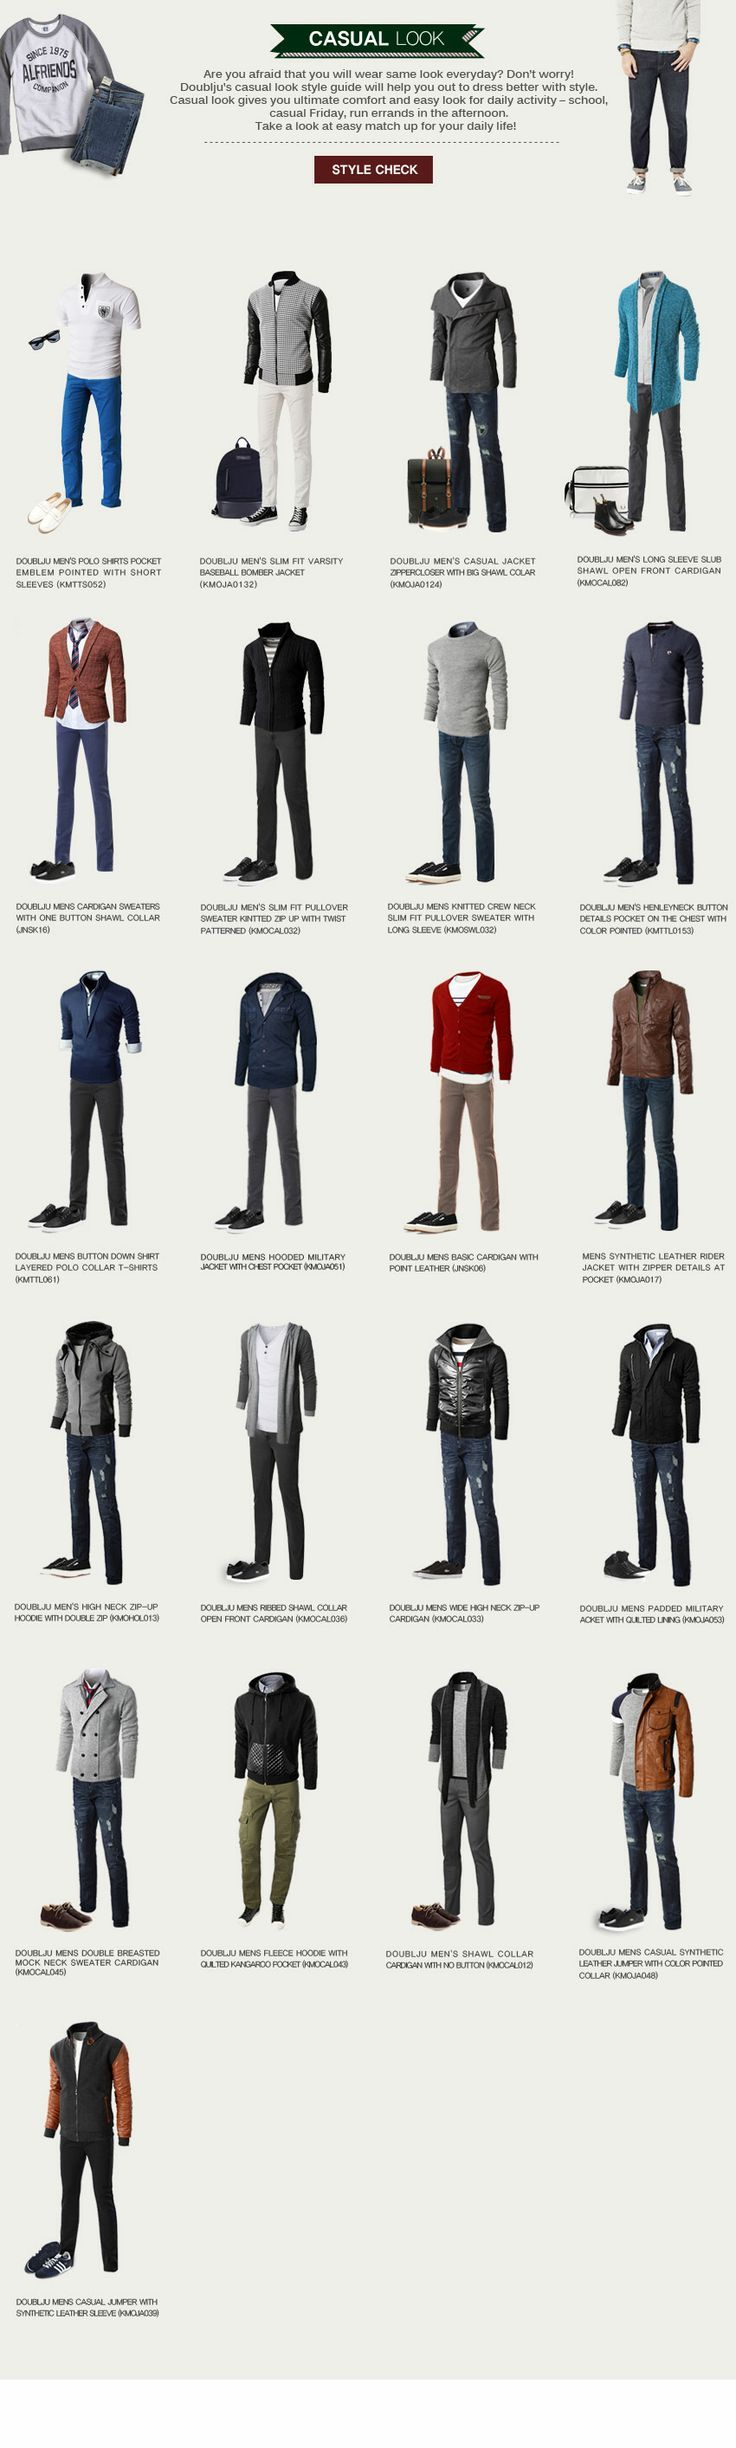 20 Casual Outfit Ideas For Men Infographic Casual